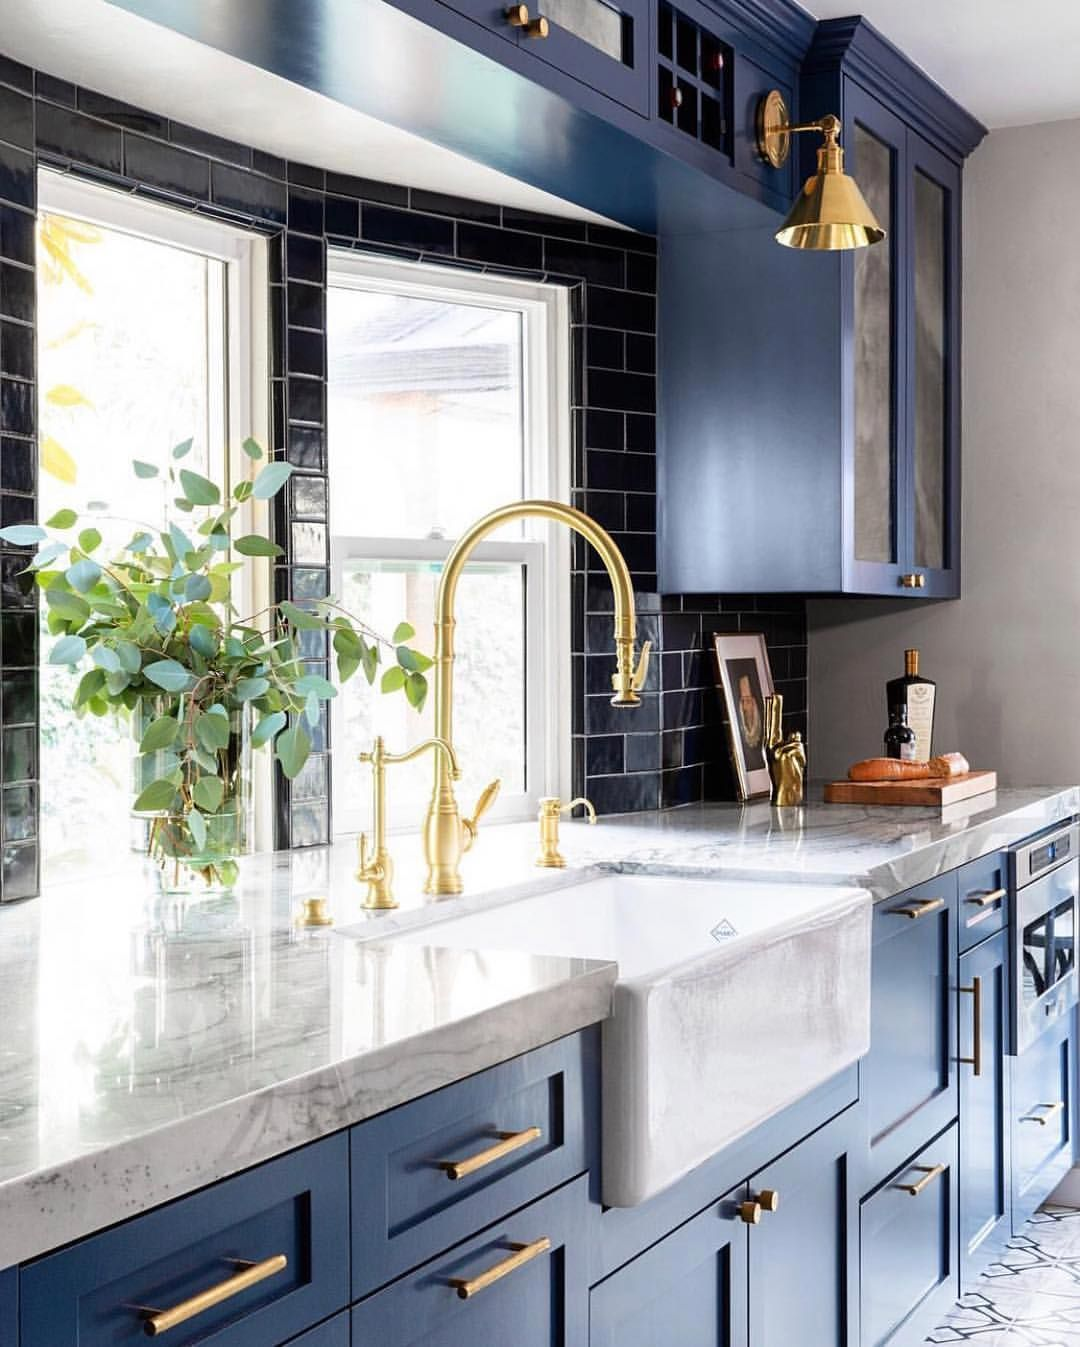 Navy Blue Subway Tile Adding Some Rich Contrast To This Already